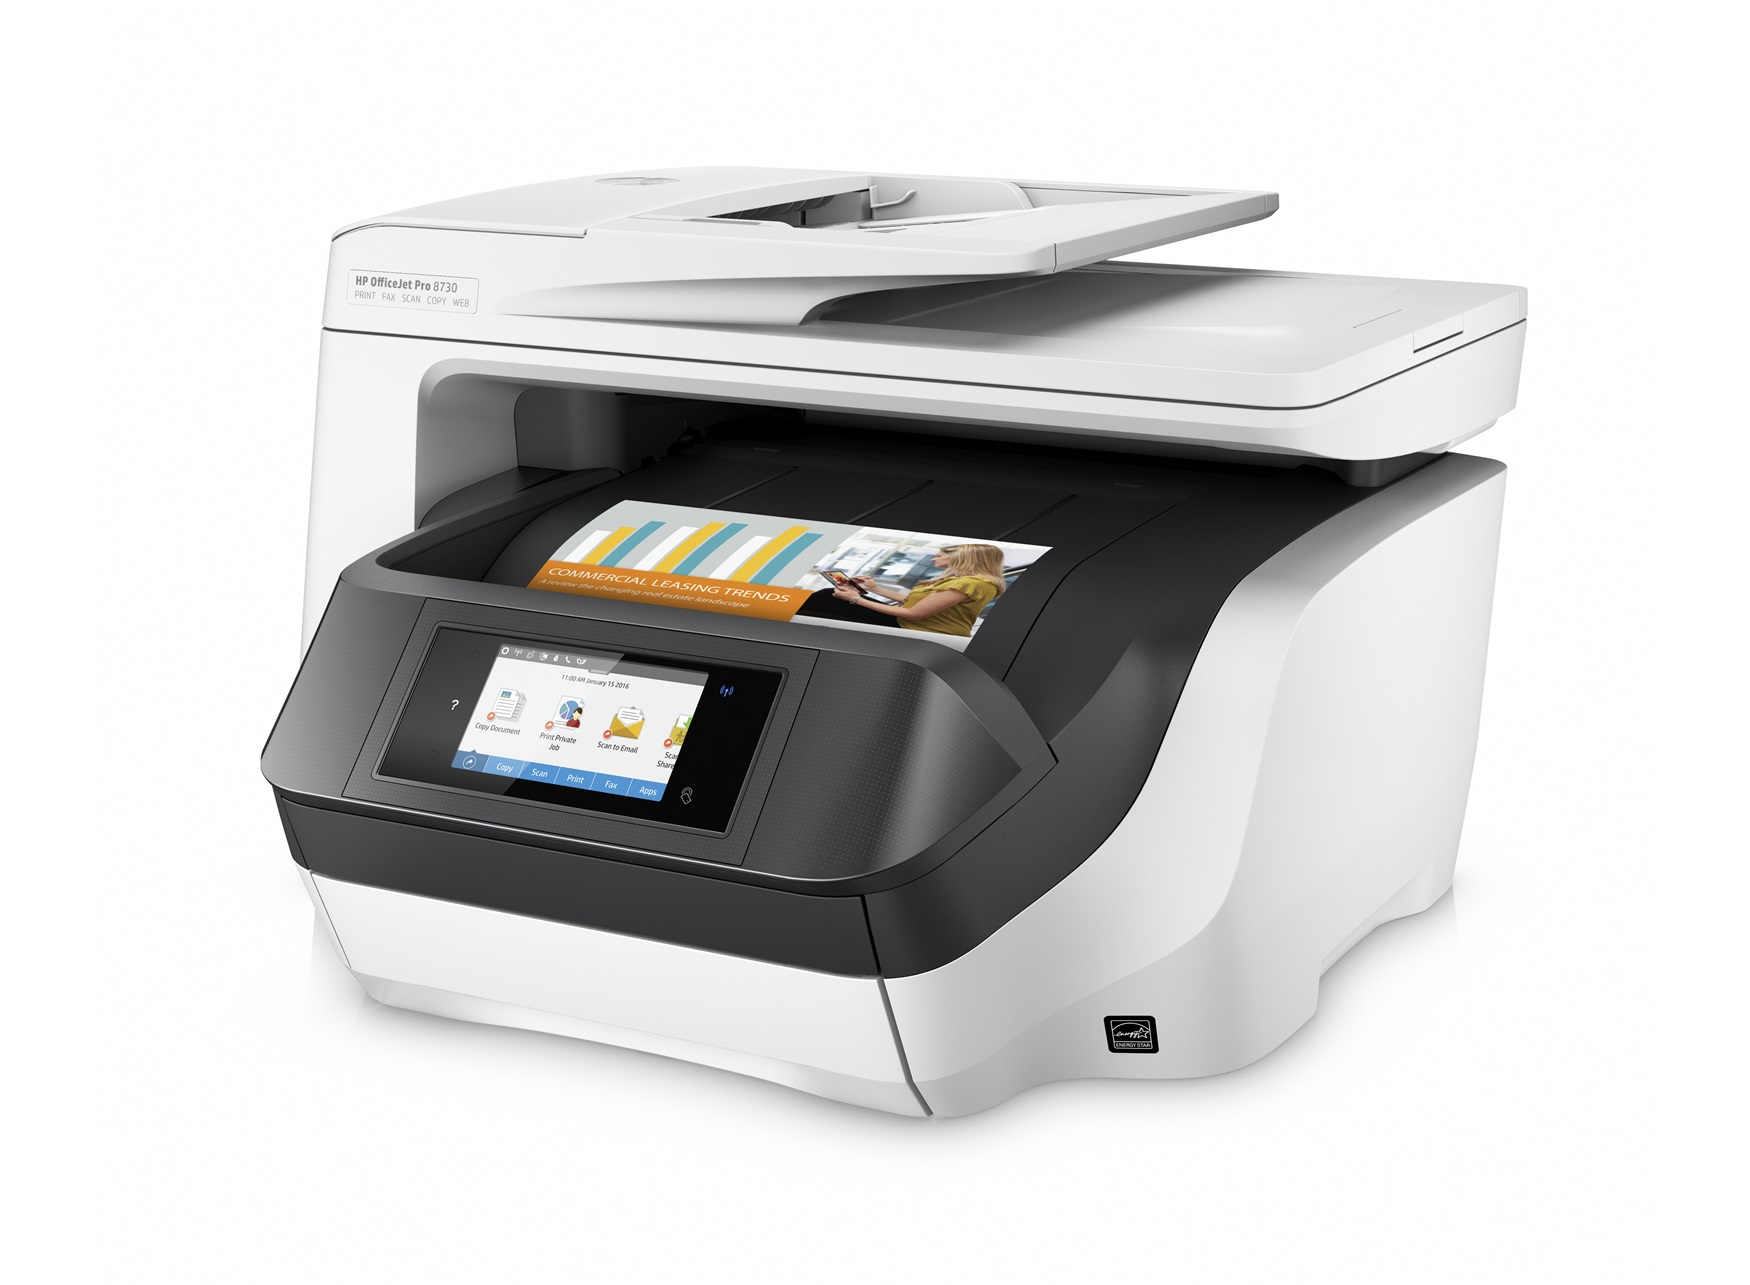 HP Officejet Pro 8730 Driver Ubuntu 18.04 How to Download and Install - Featured